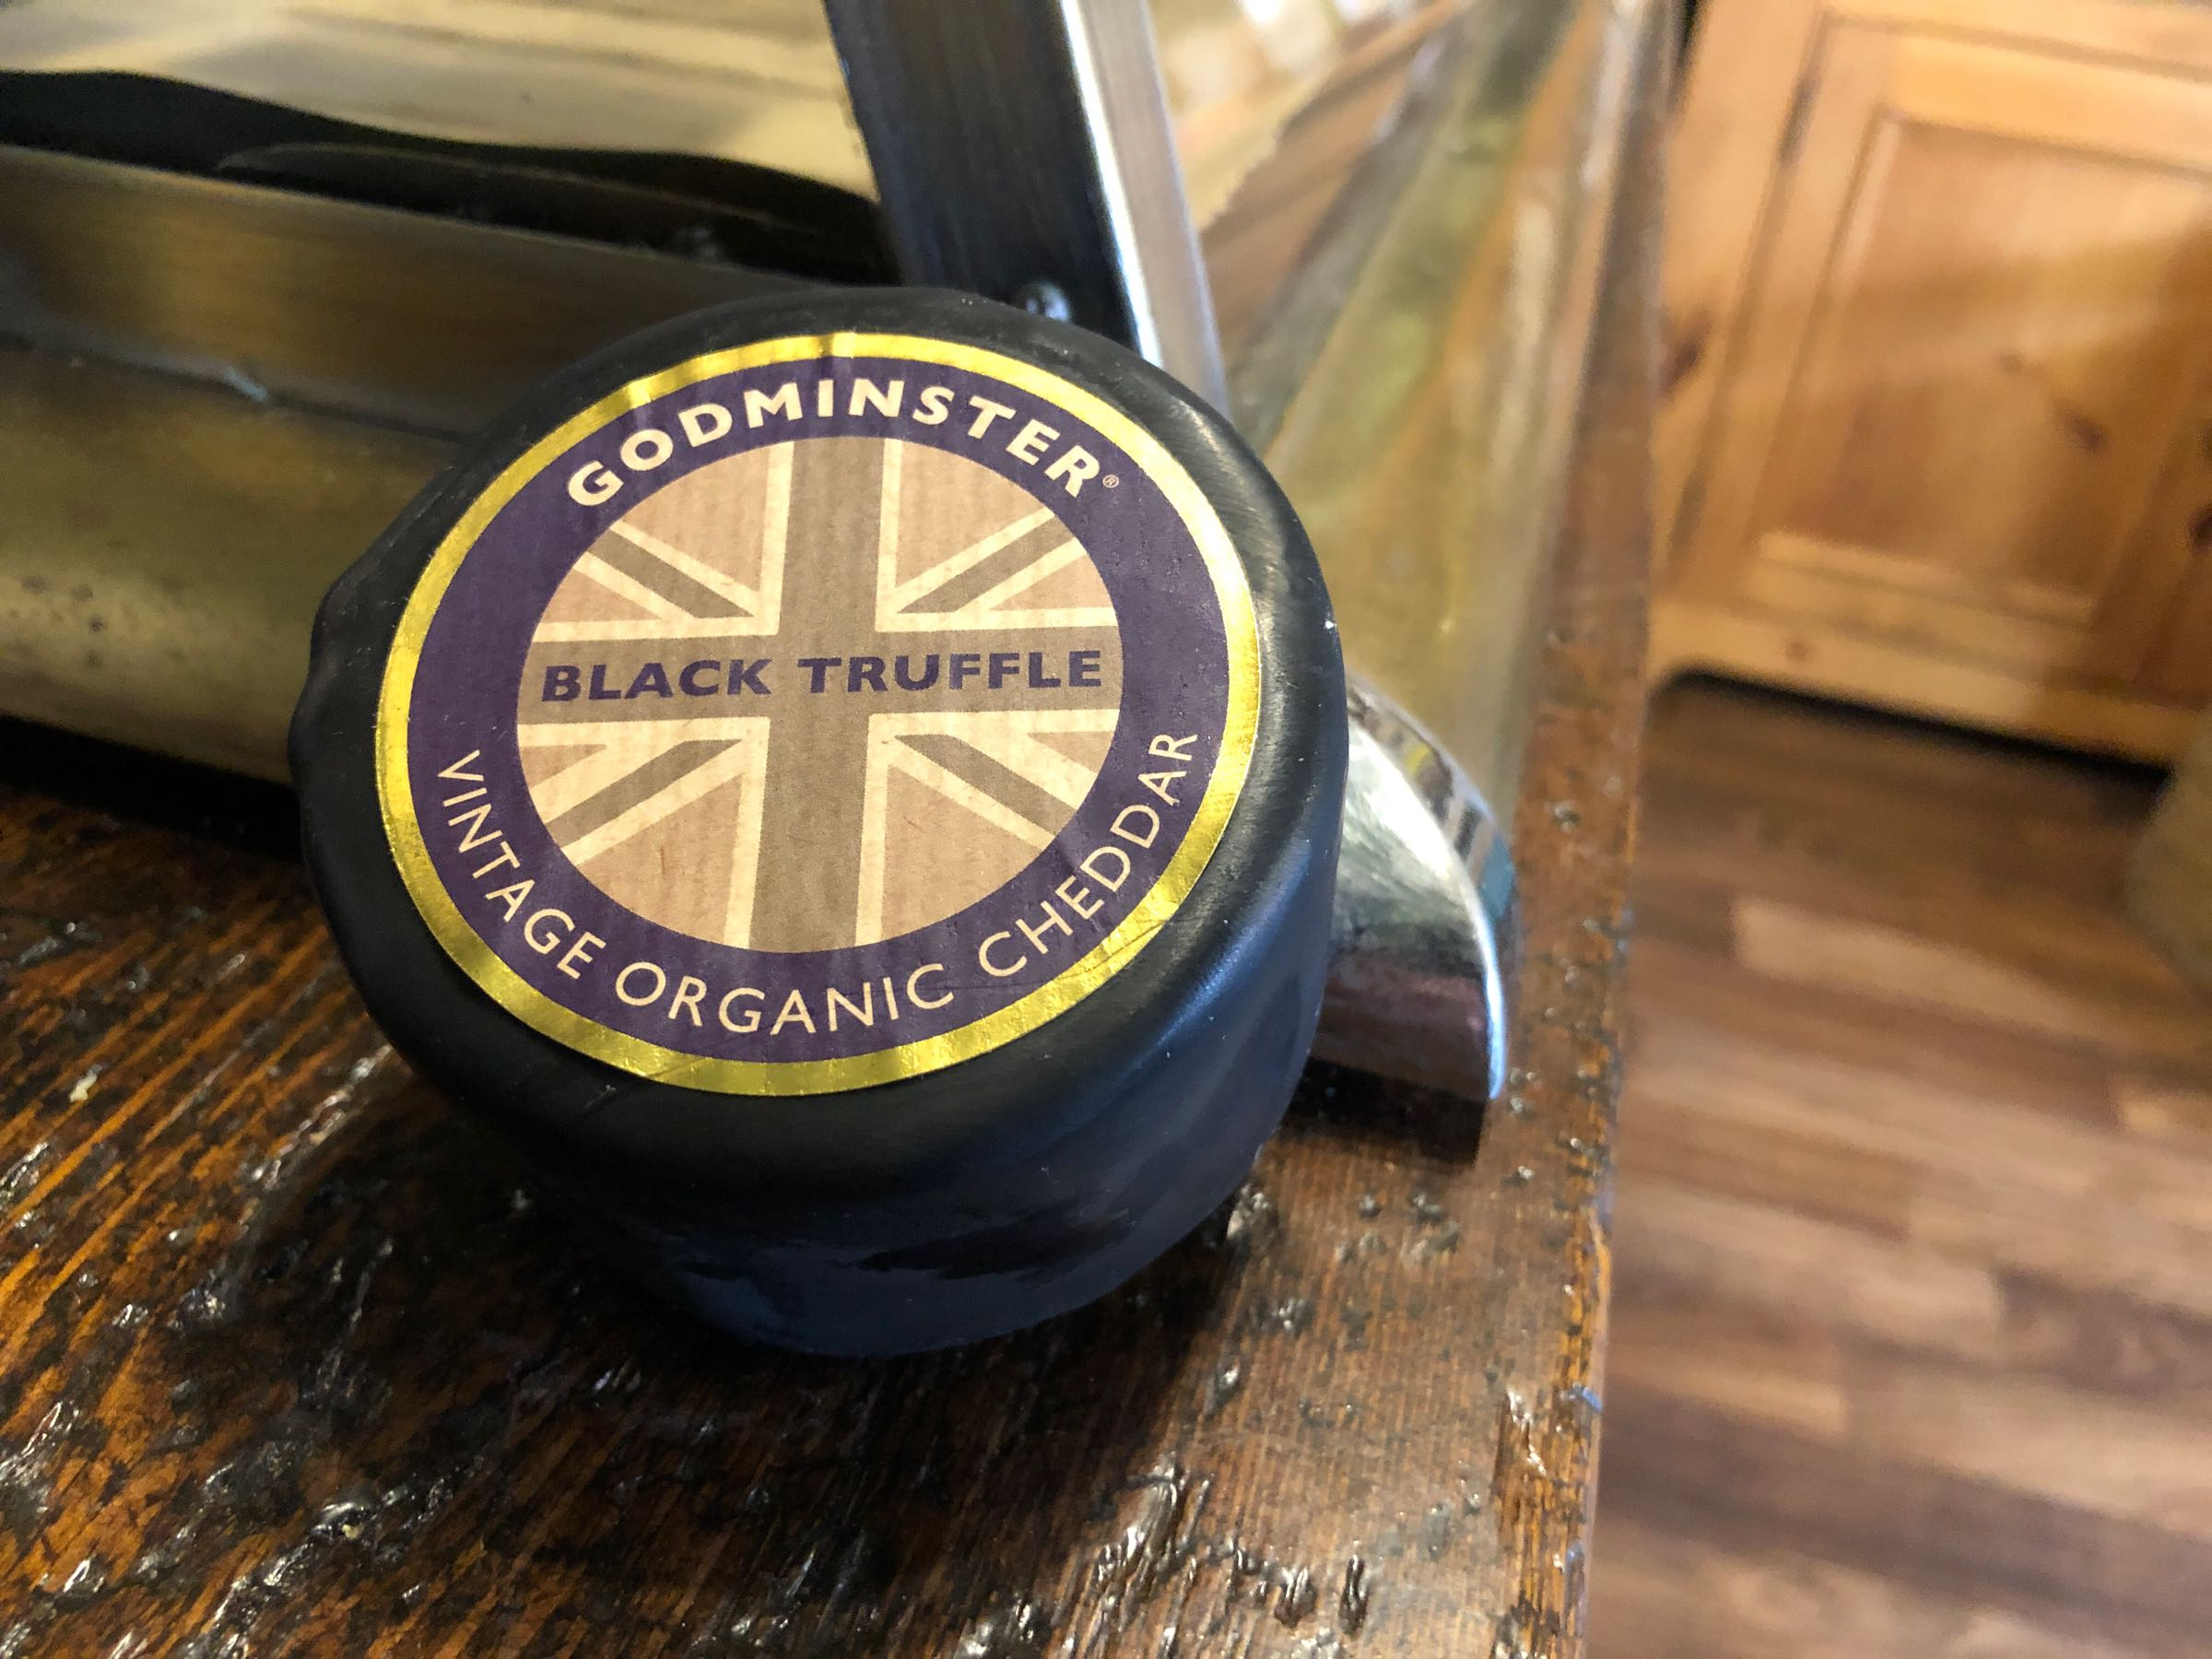 Godminster Black Truffle 200g